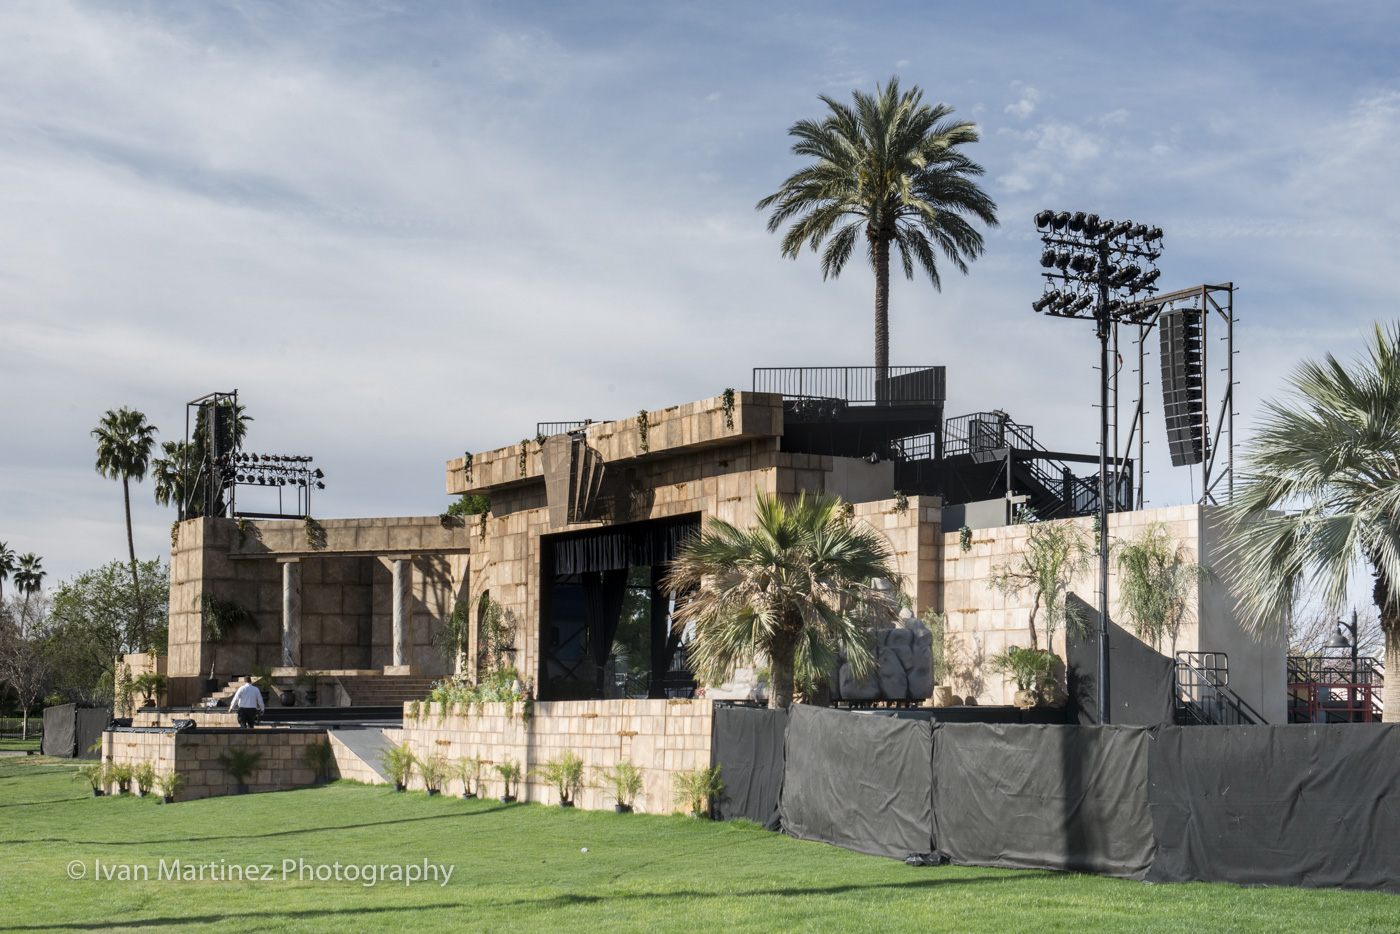 Mesa Easter Pageant at Mesa LDS Temple. Photo by Ivan Martinez Photography.